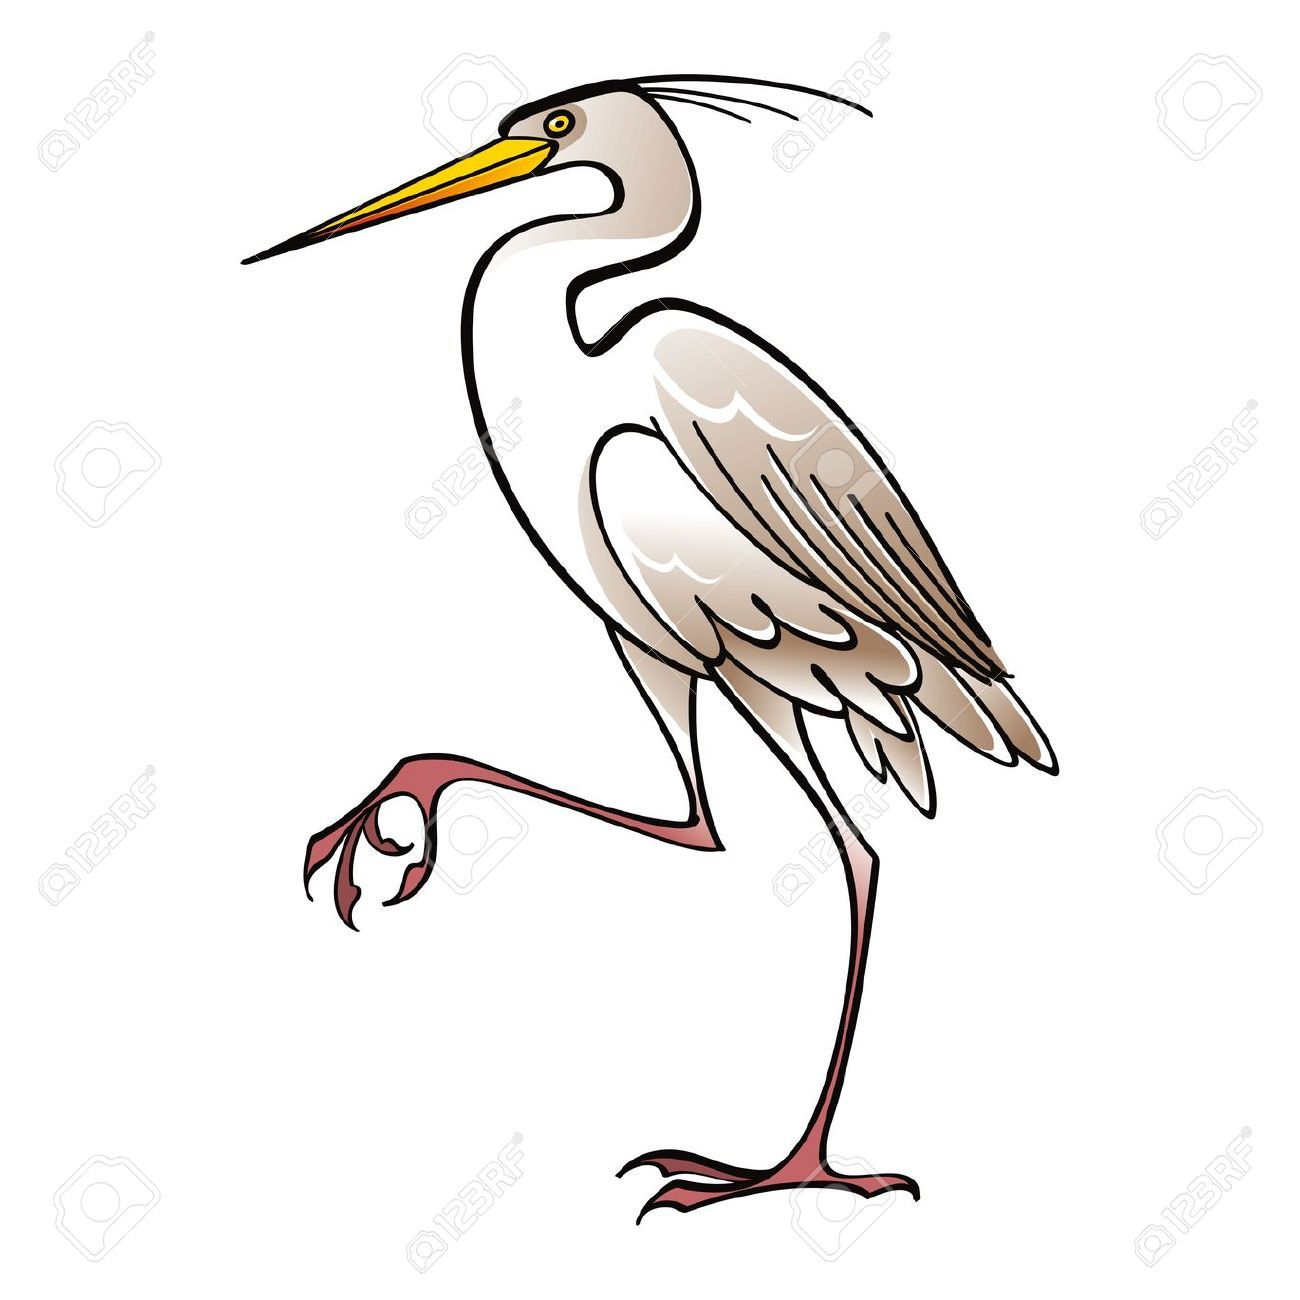 White bird clip art. Animals clipart crane